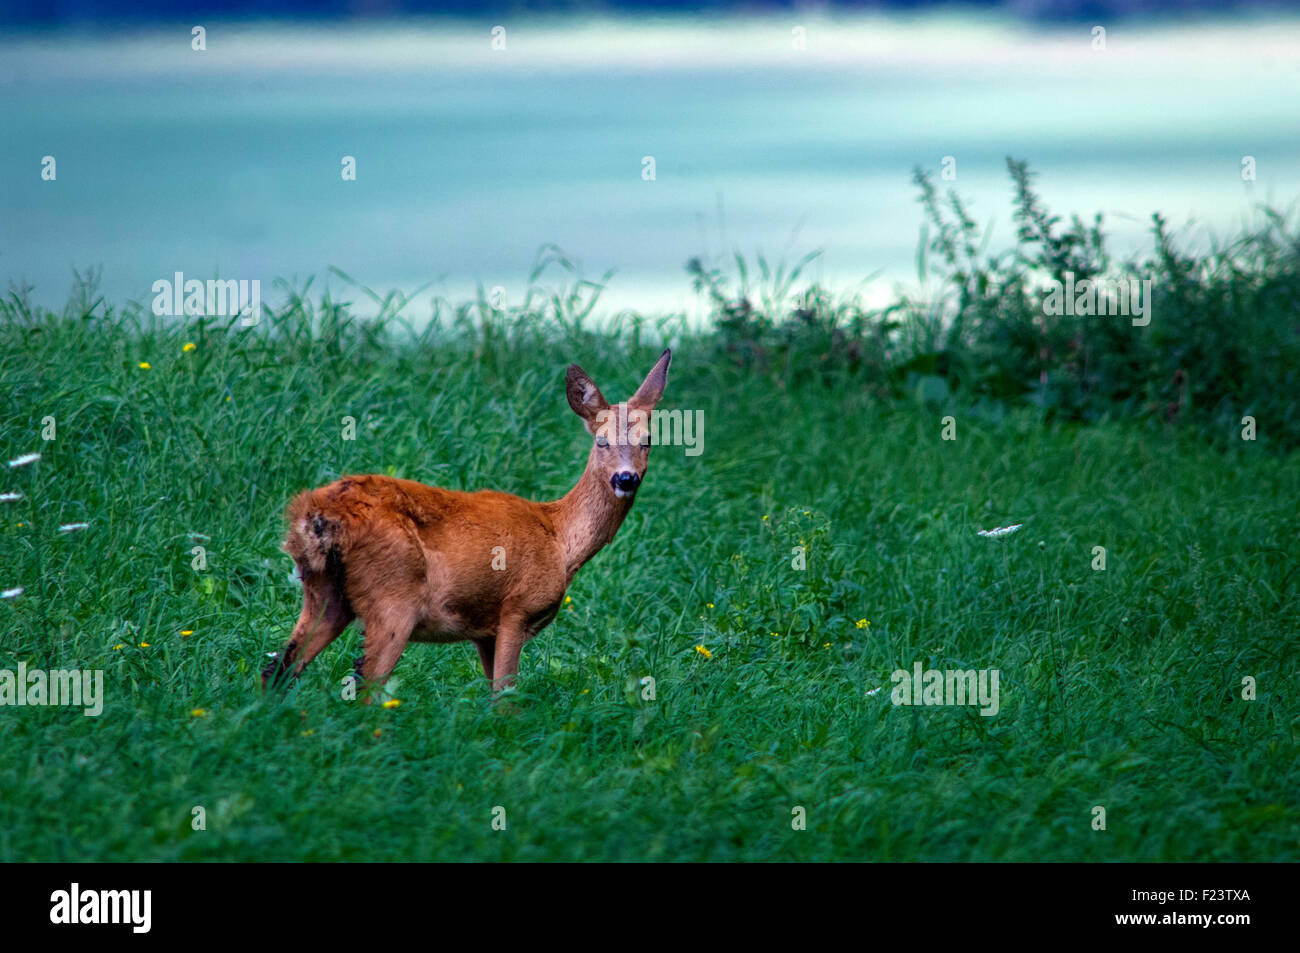 A wild Deer in the early morning in Saalekreis, Saxony-Anhalt, Germany. - Stock Image